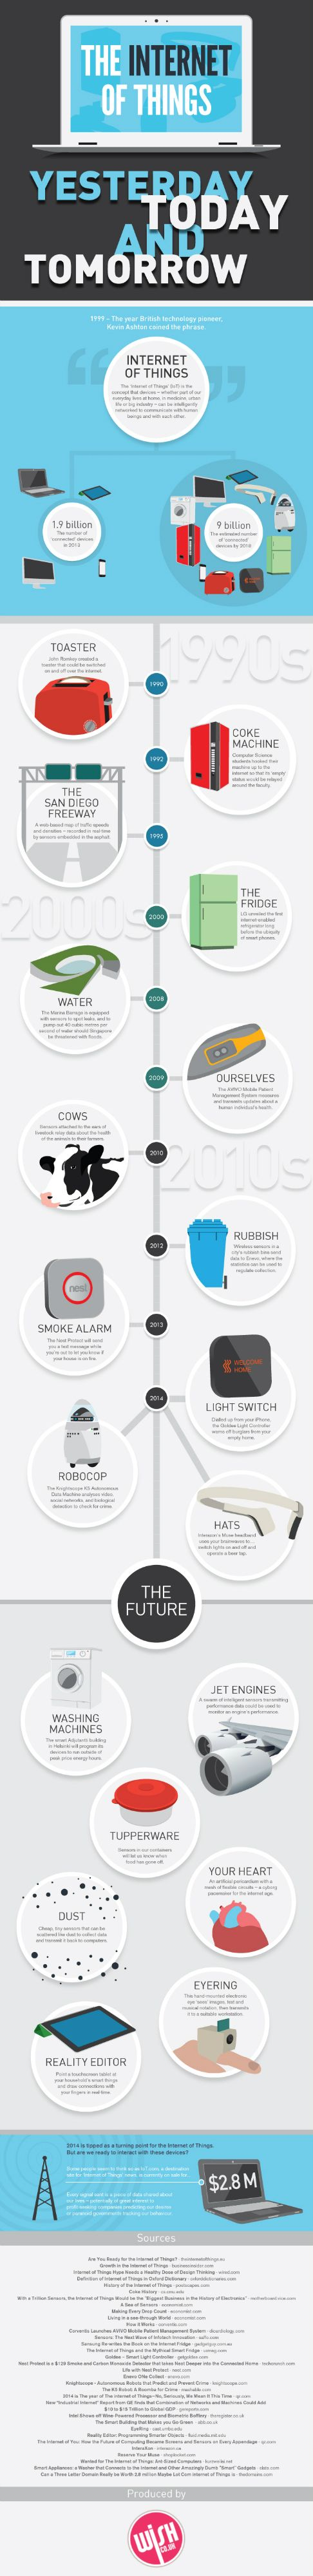 The Internet of Things: yesterday, today and tomorrow image The Internet of Things …   – Internet Of Things